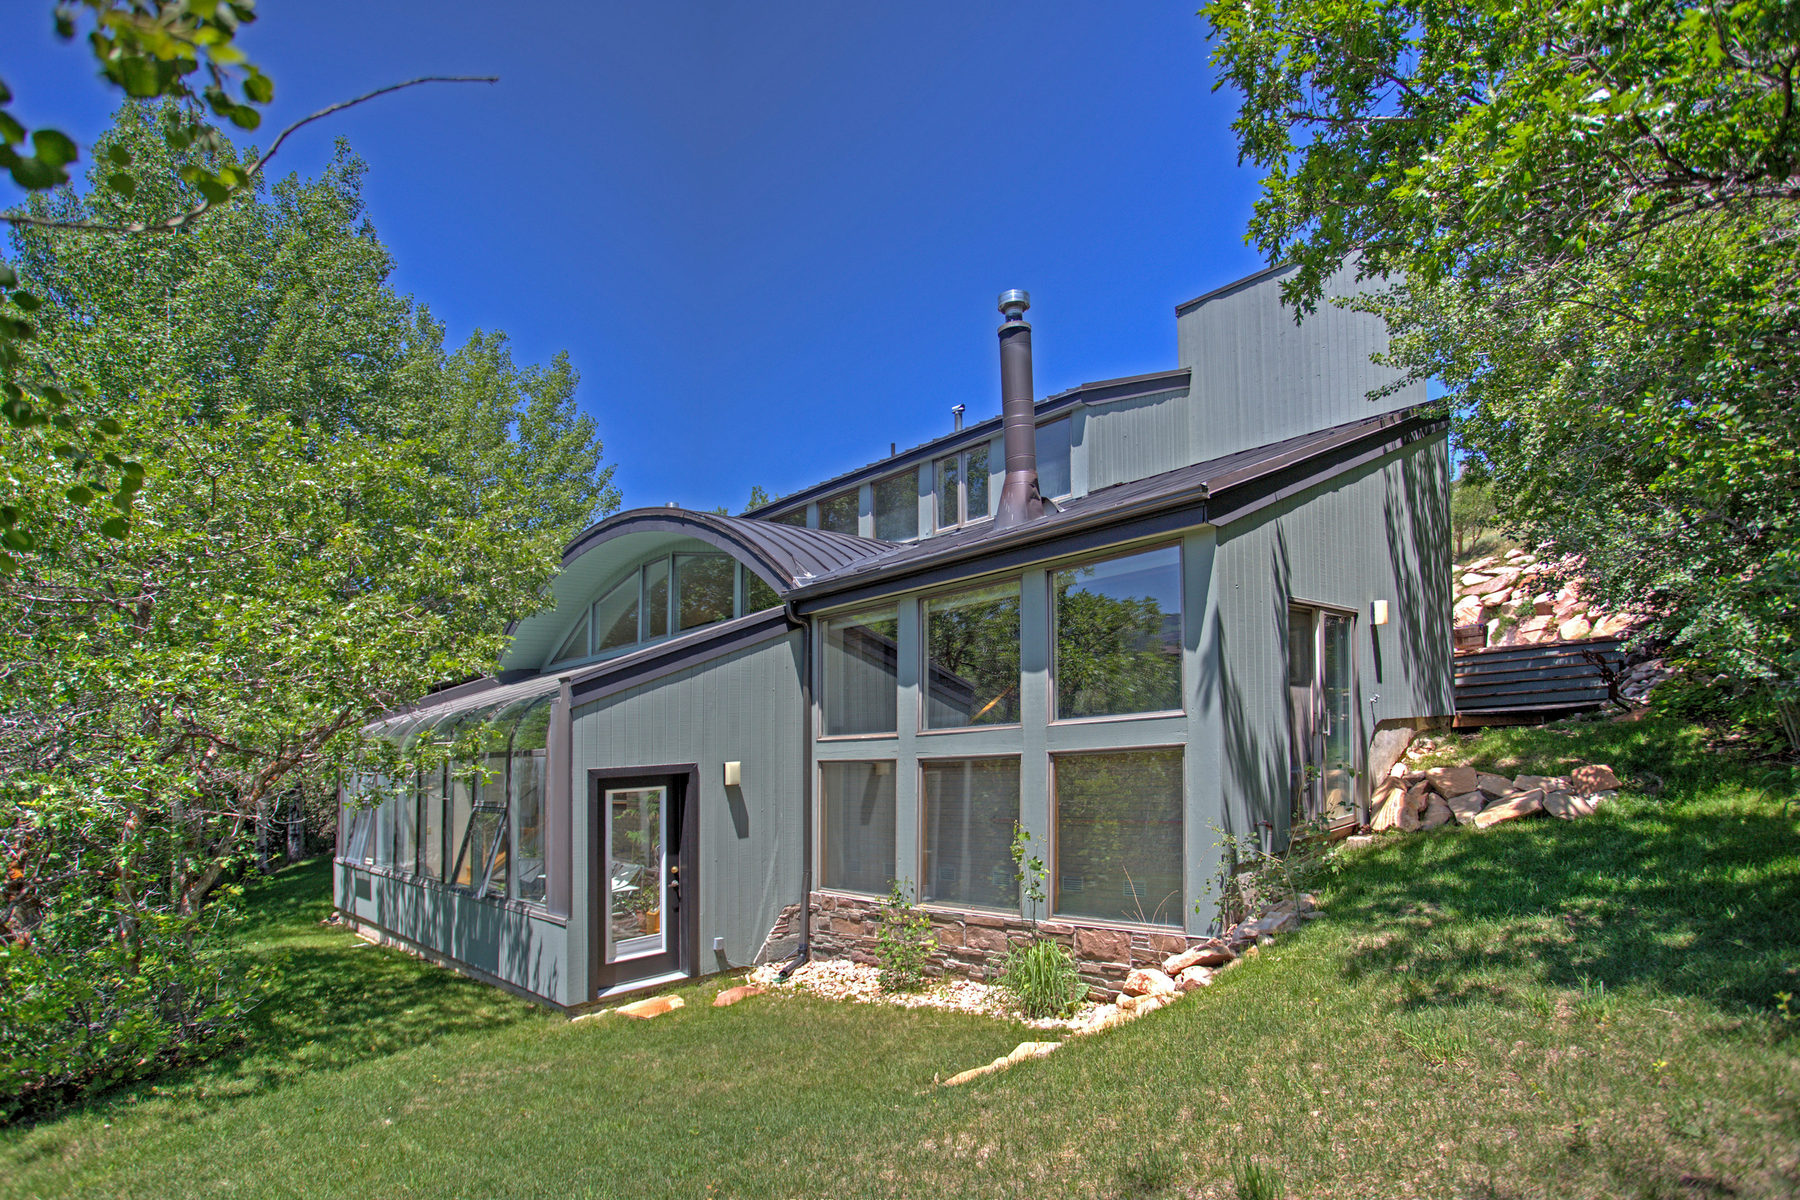 Single Family Home for Sale at Passive Solar Home Above Old Town 685 Mellow Mountain Rd Park City, Utah 84060 United States